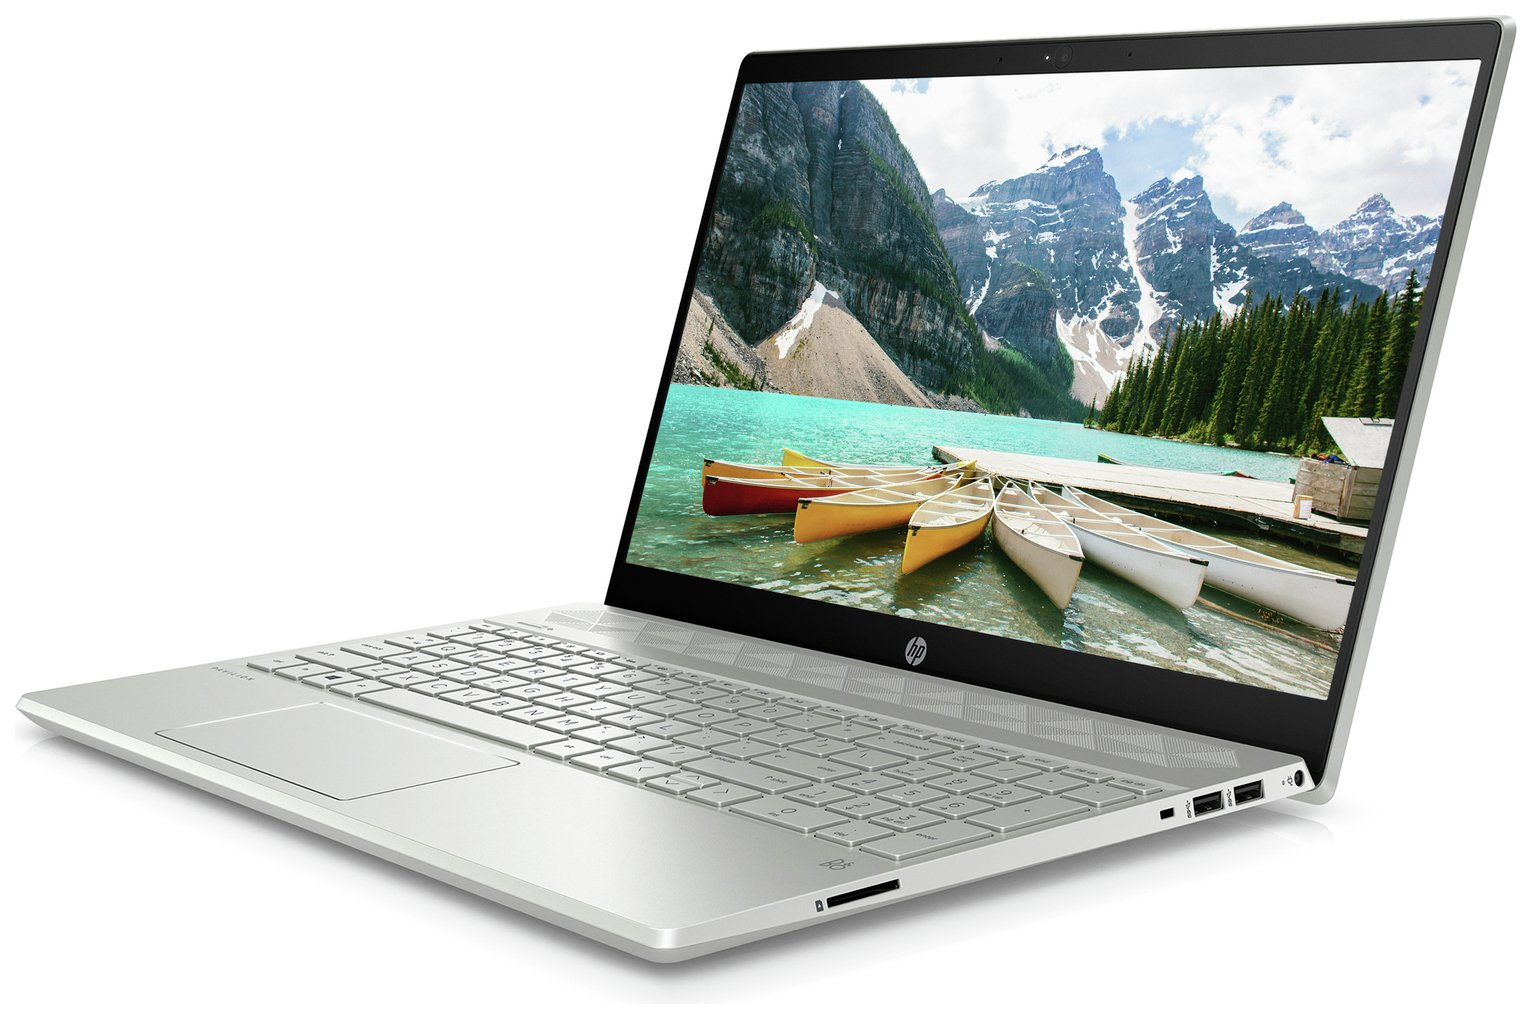 HP Pavilion 15.6 Inch i3 8GB 128GB Laptop - Silver